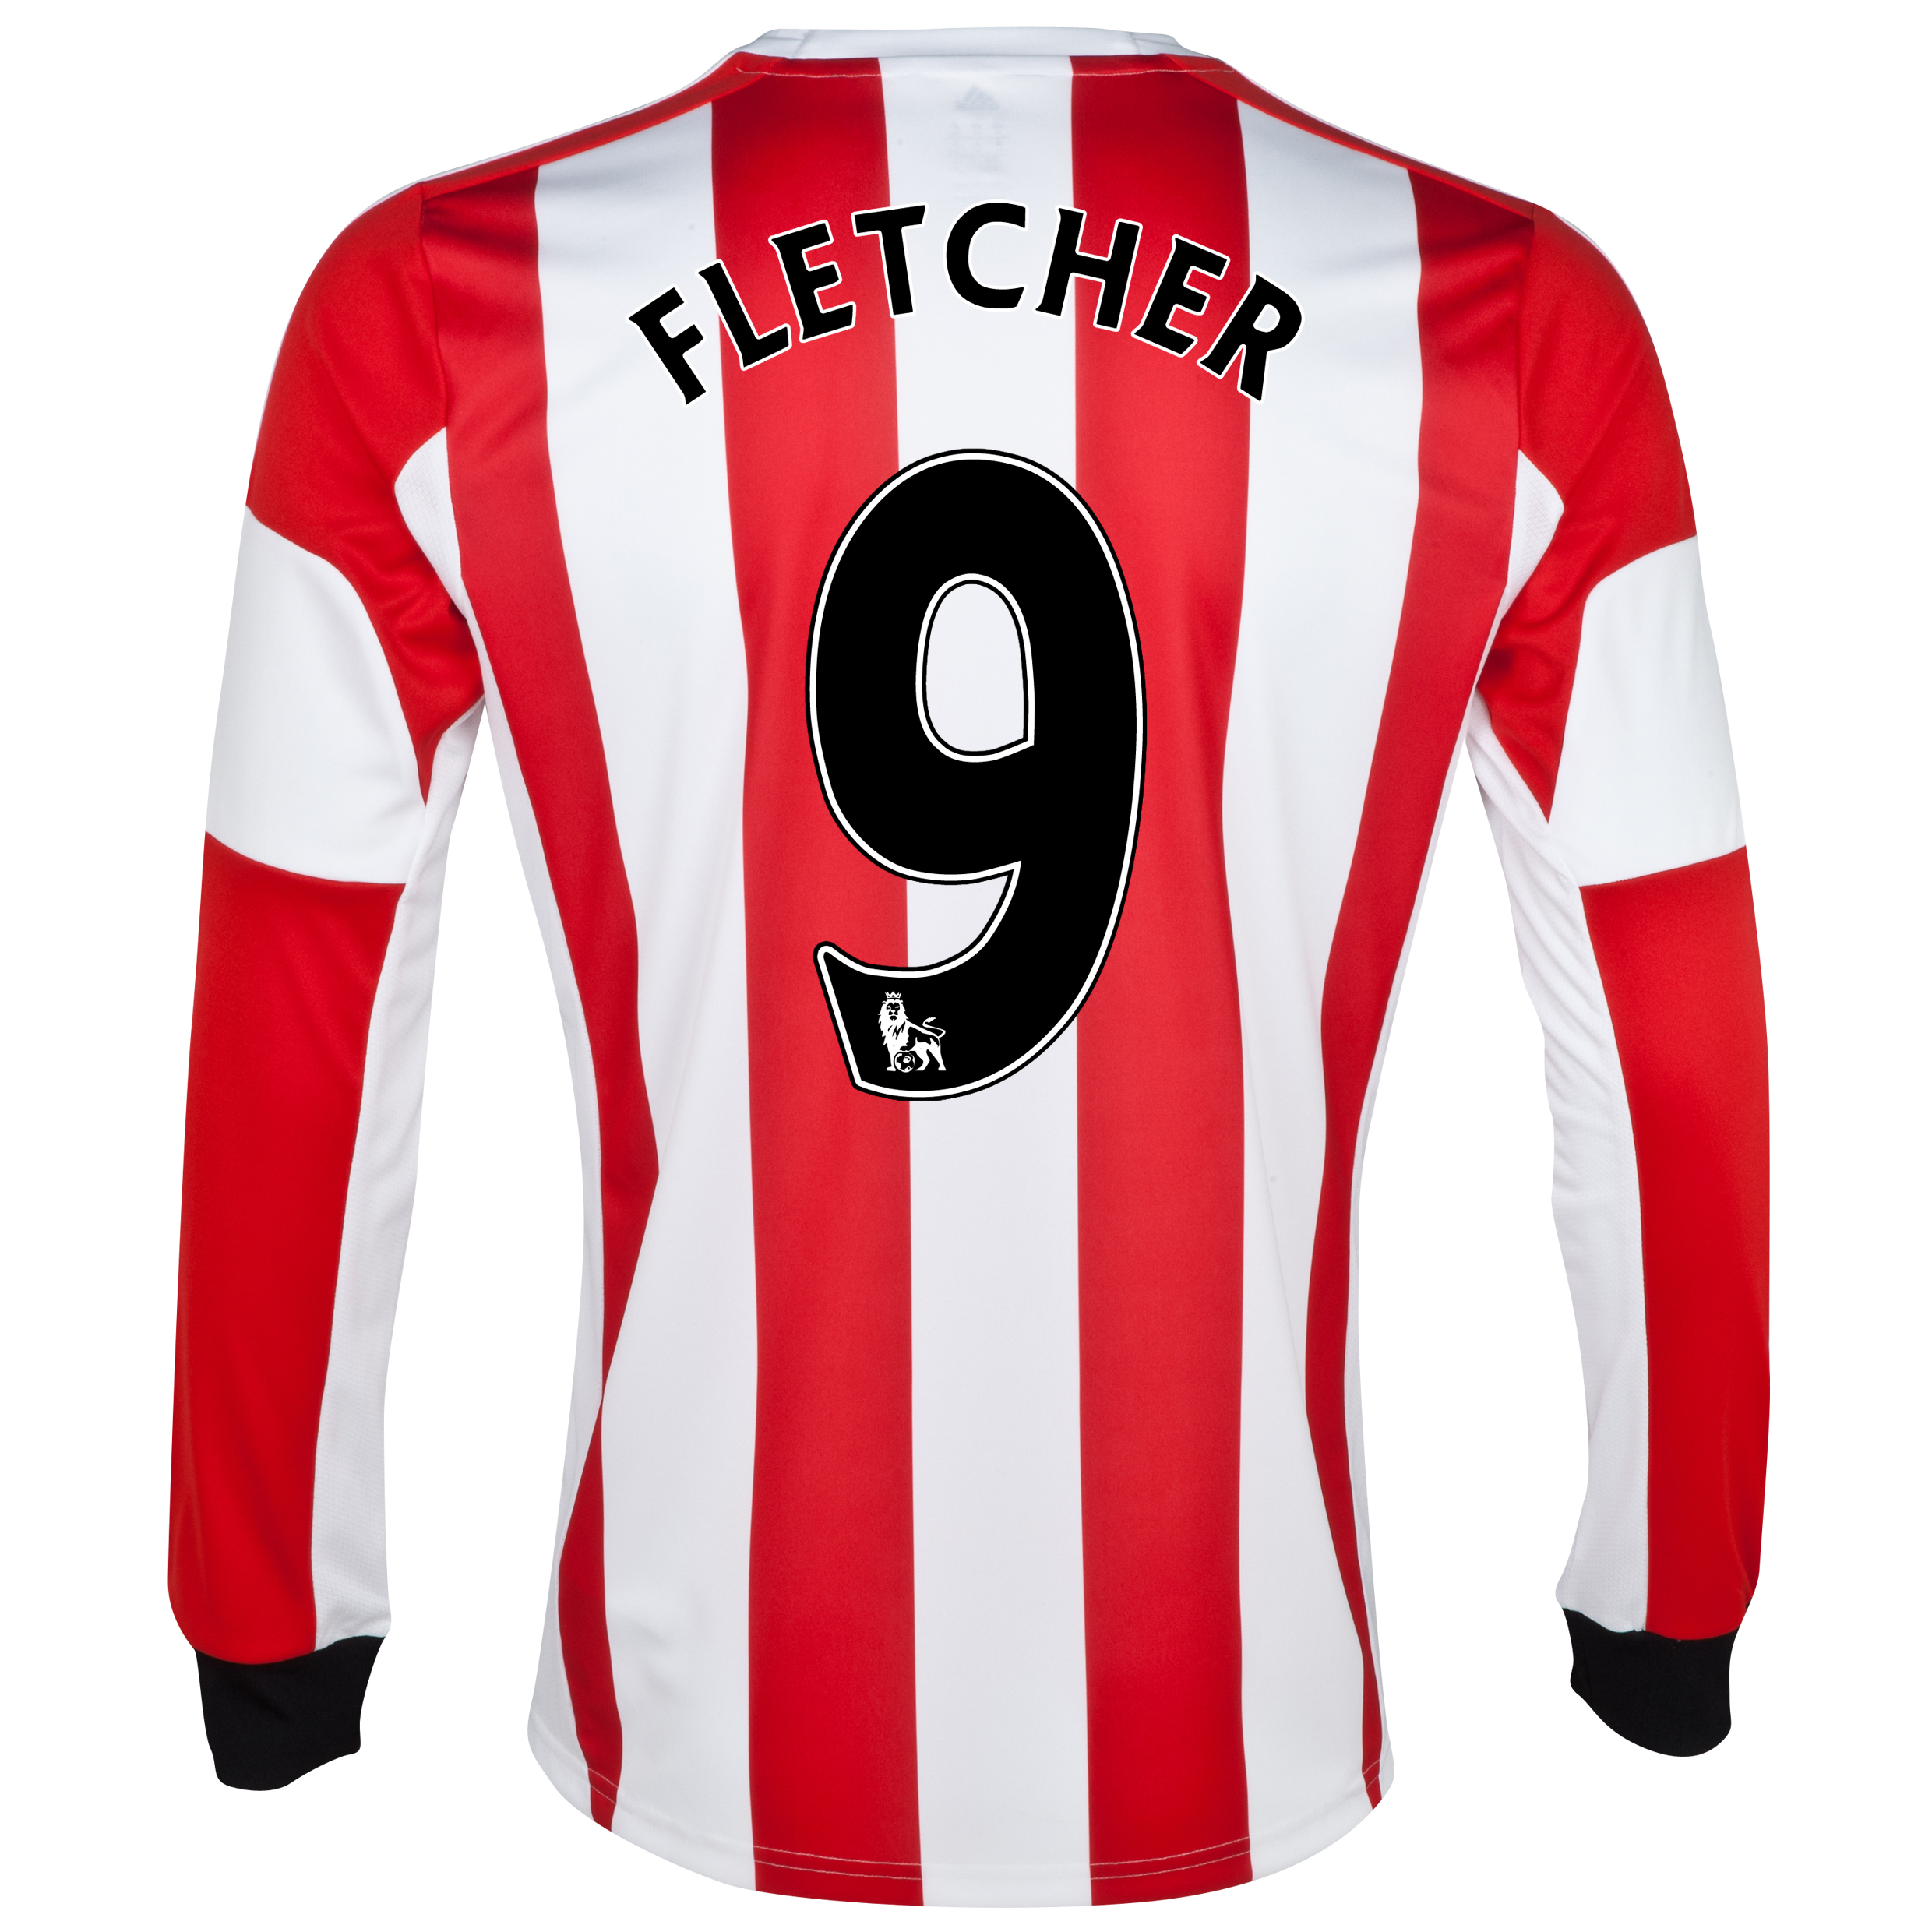 Sunderland Home Shirt 2013/14 - Long Sleeved - Junior with Fletcher 9 printing